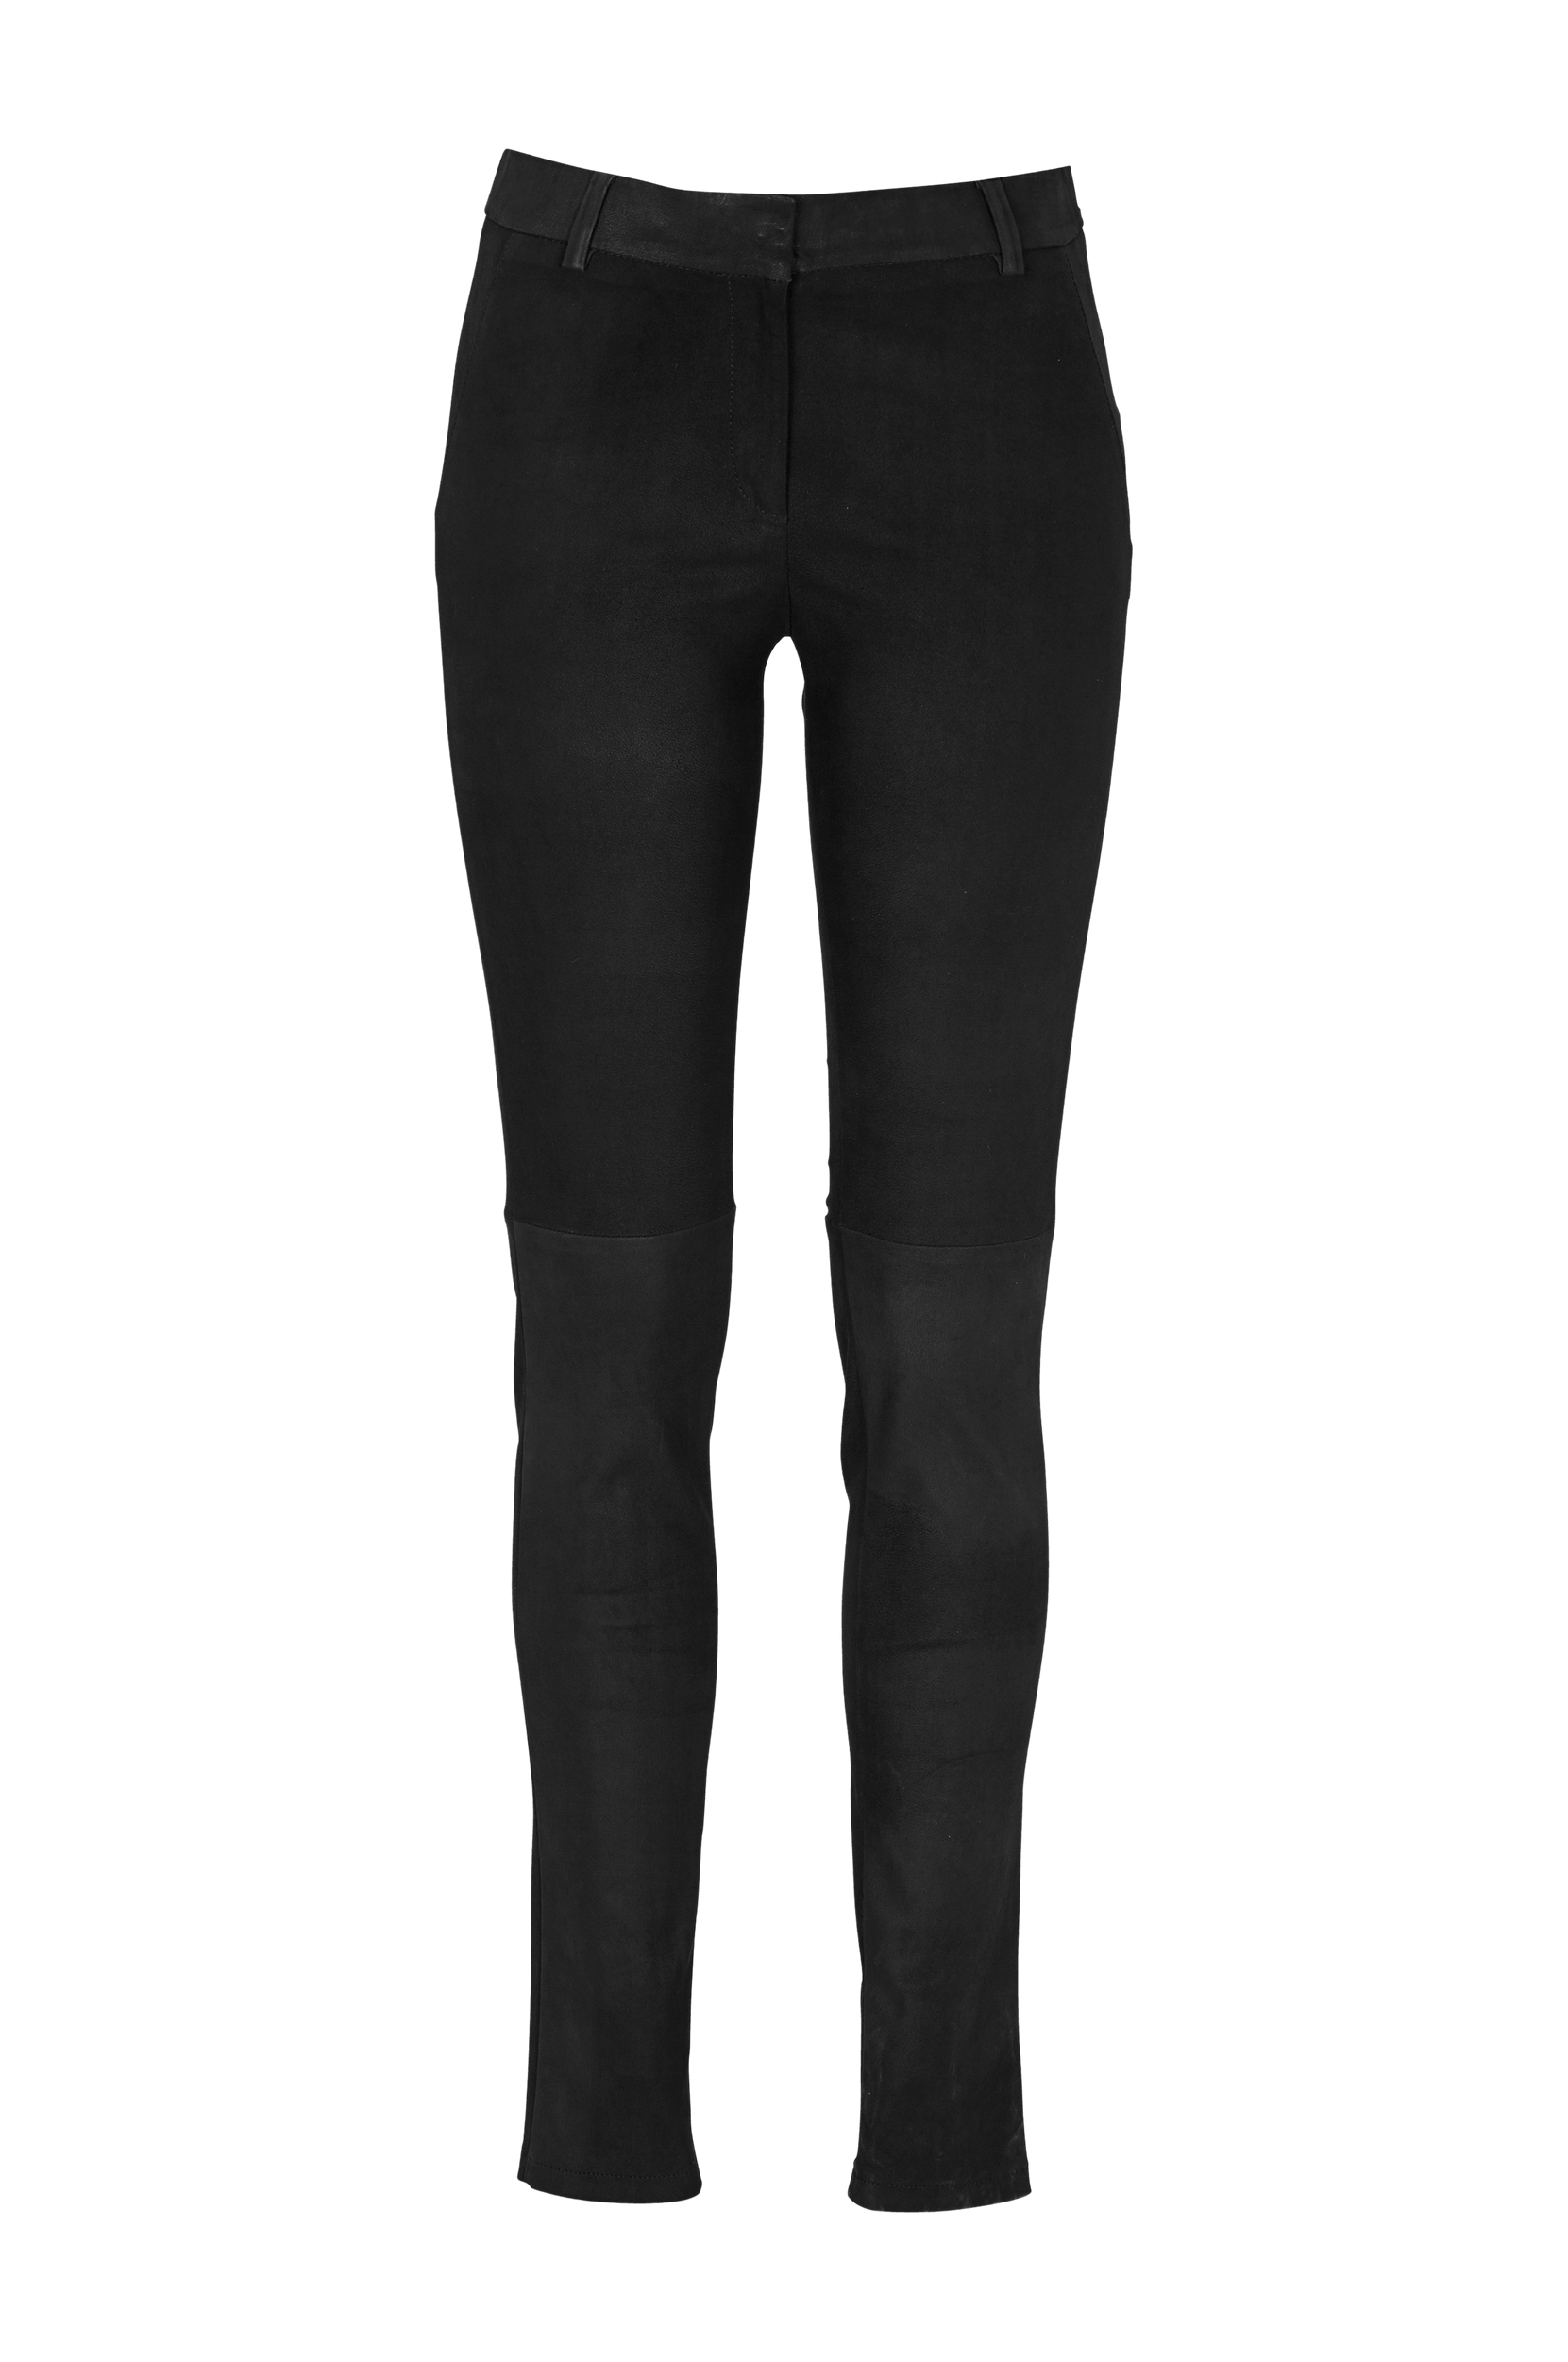 Brave-nahkaleggingsit, slim fit